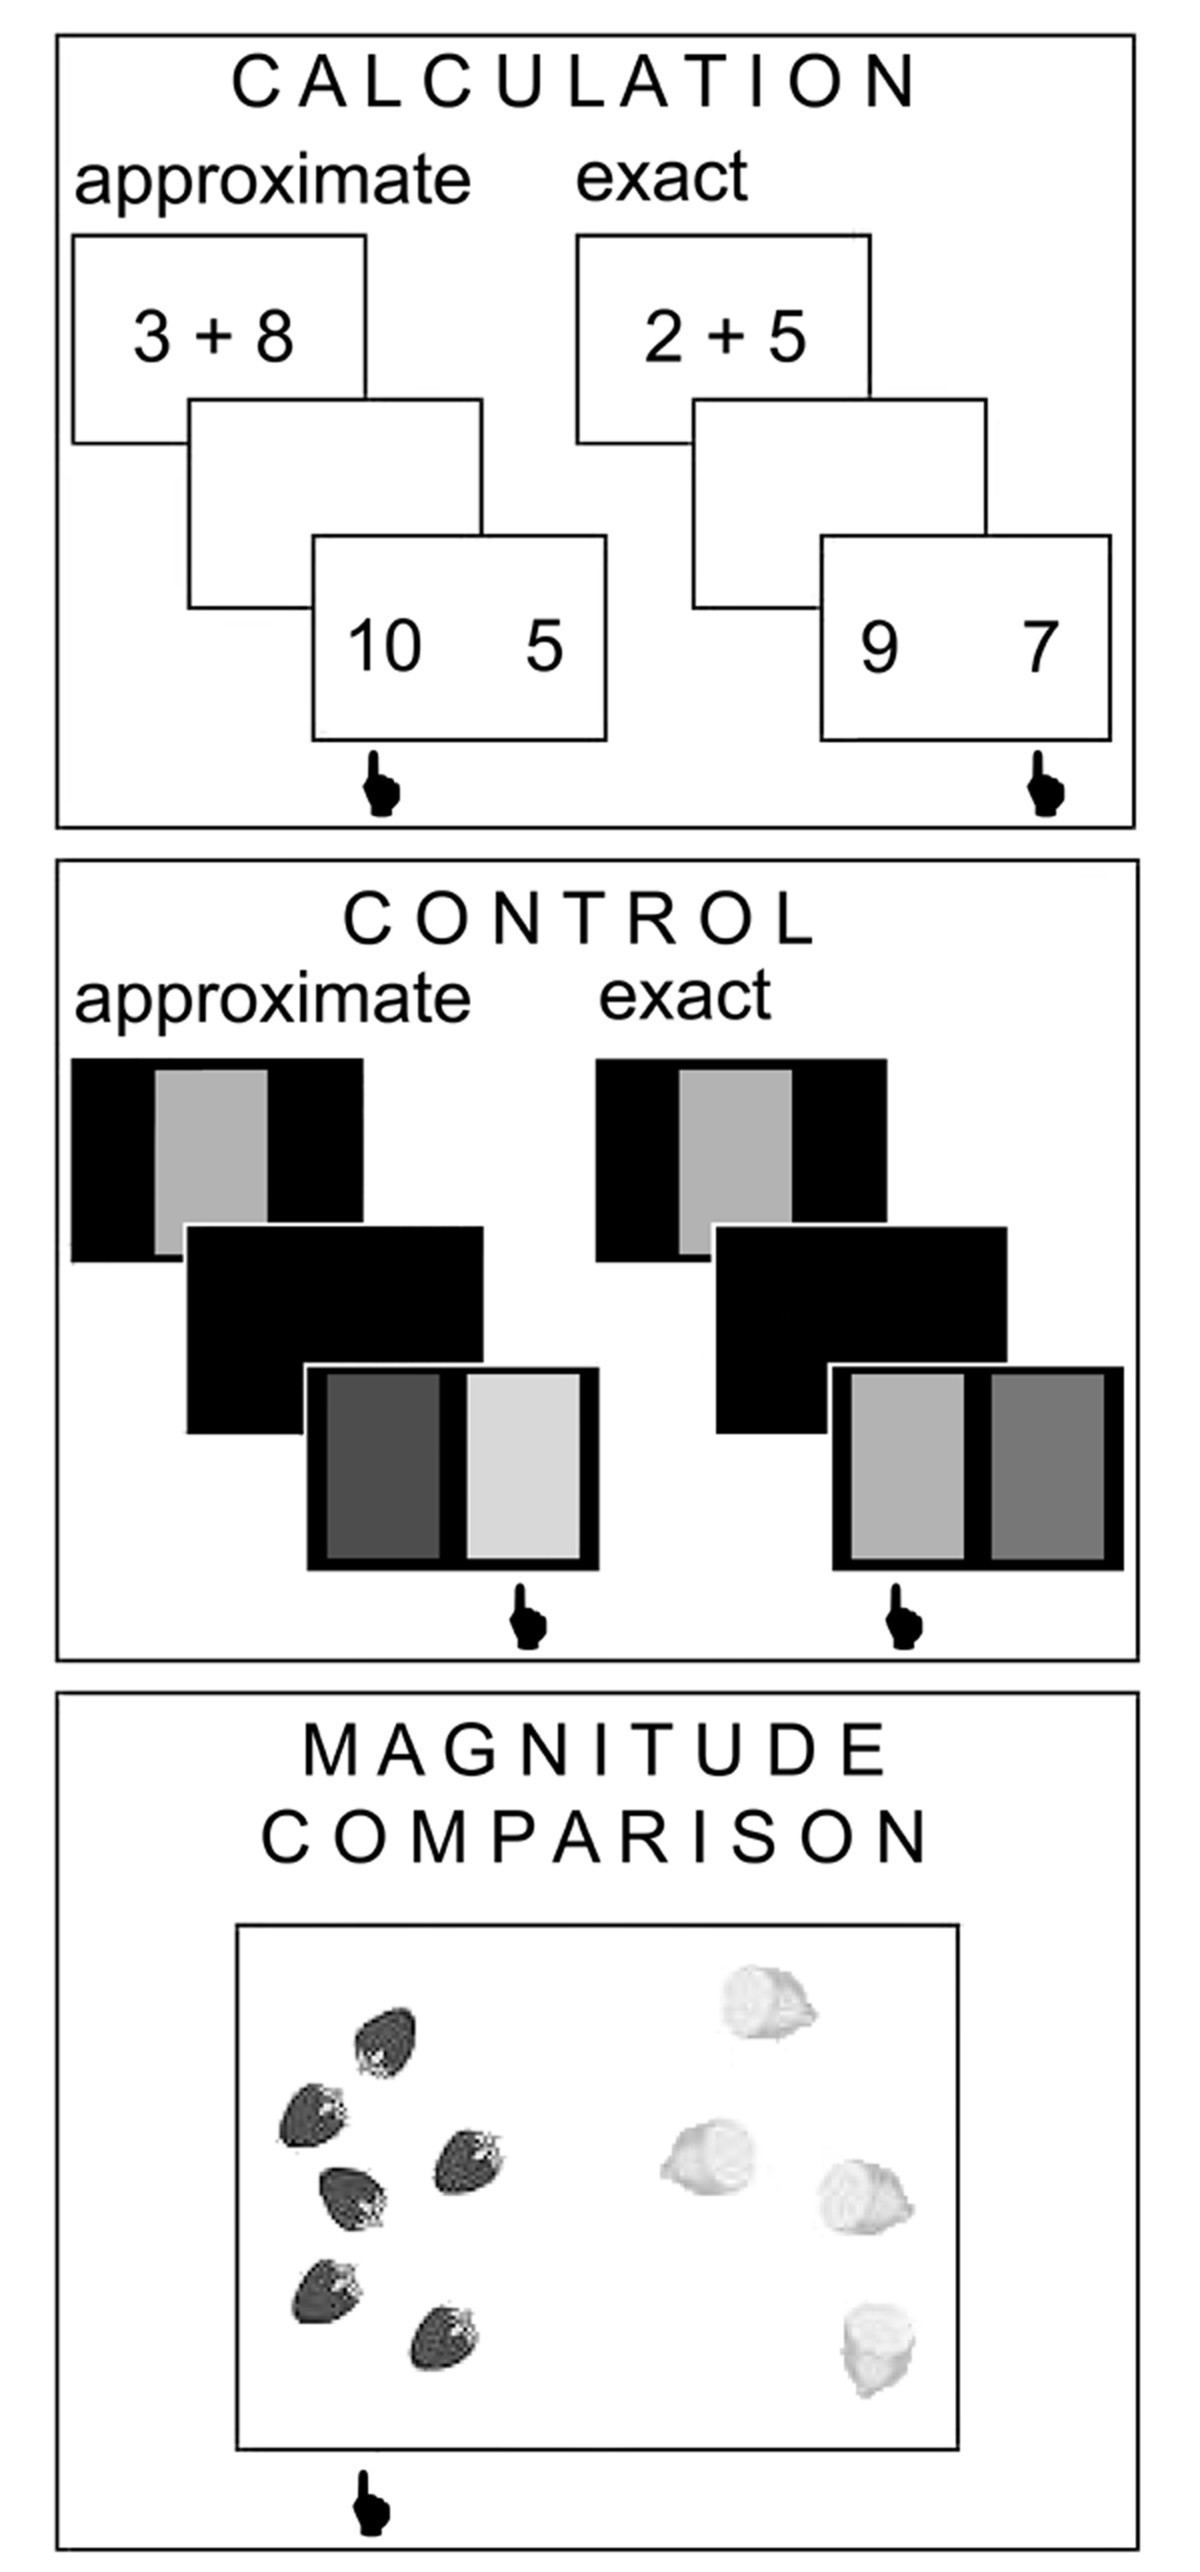 http://static-content.springer.com/image/art%3A10.1186%2F1744-9081-2-31/MediaObjects/12993_2006_Article_56_Fig1_HTML.jpg